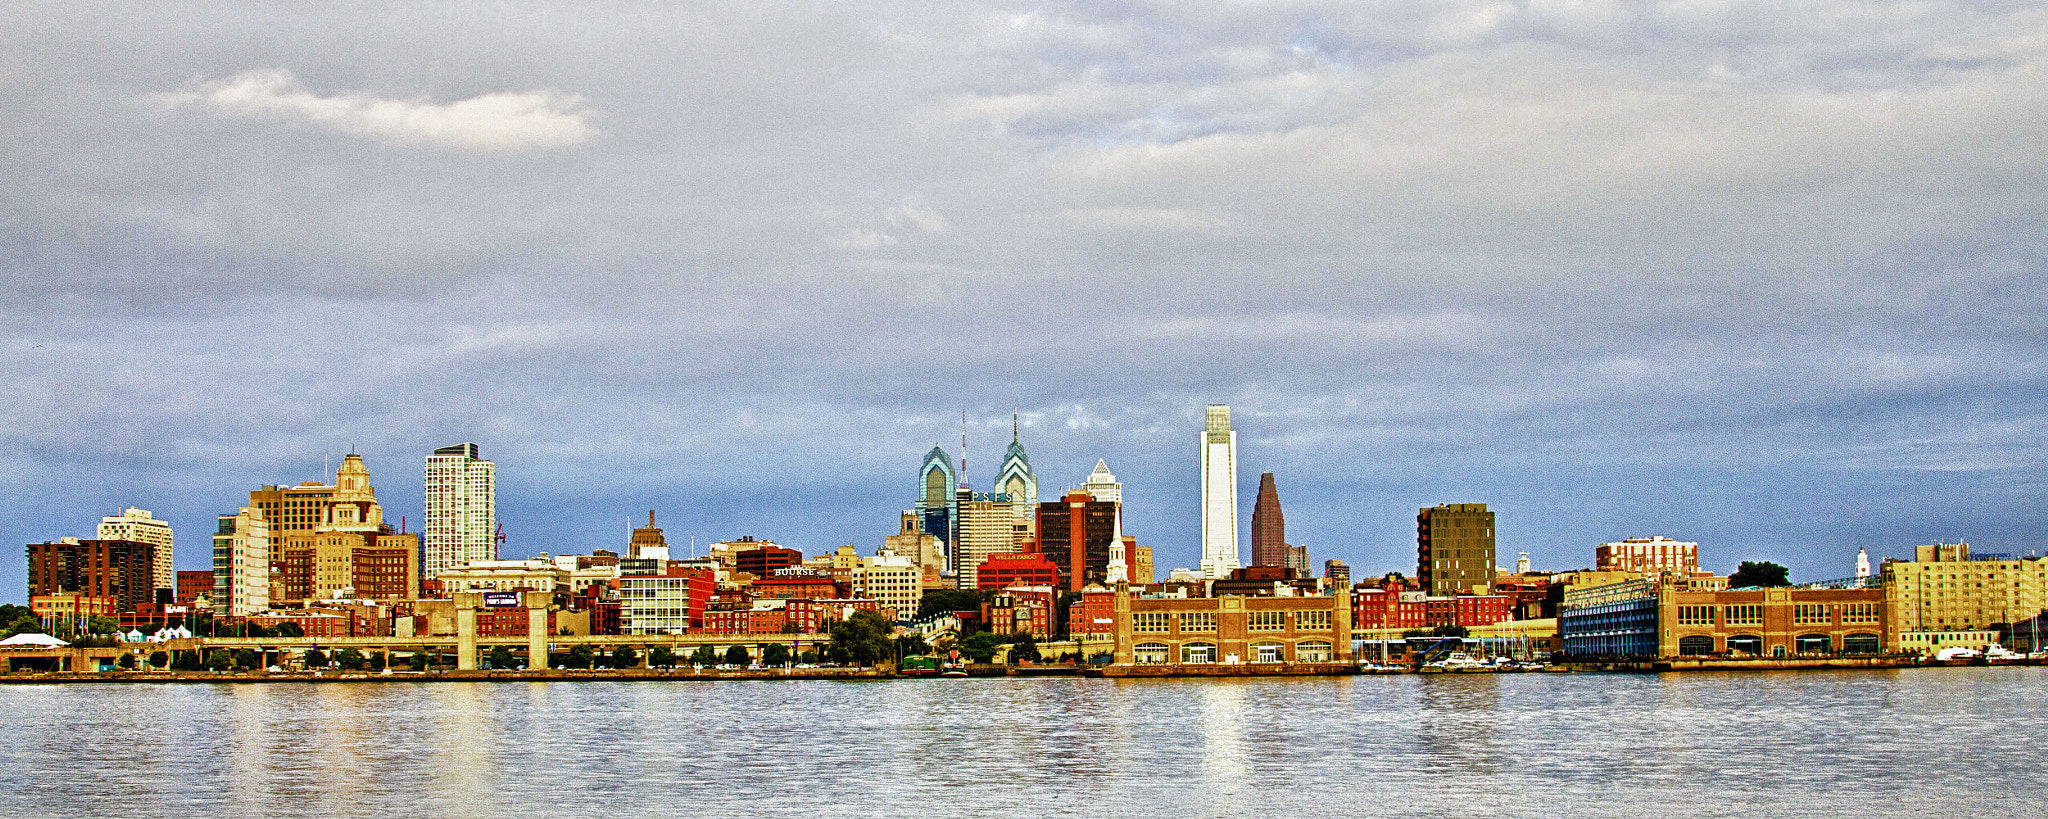 Photograph Philadelphia by Sonny Hamauchi on 500px